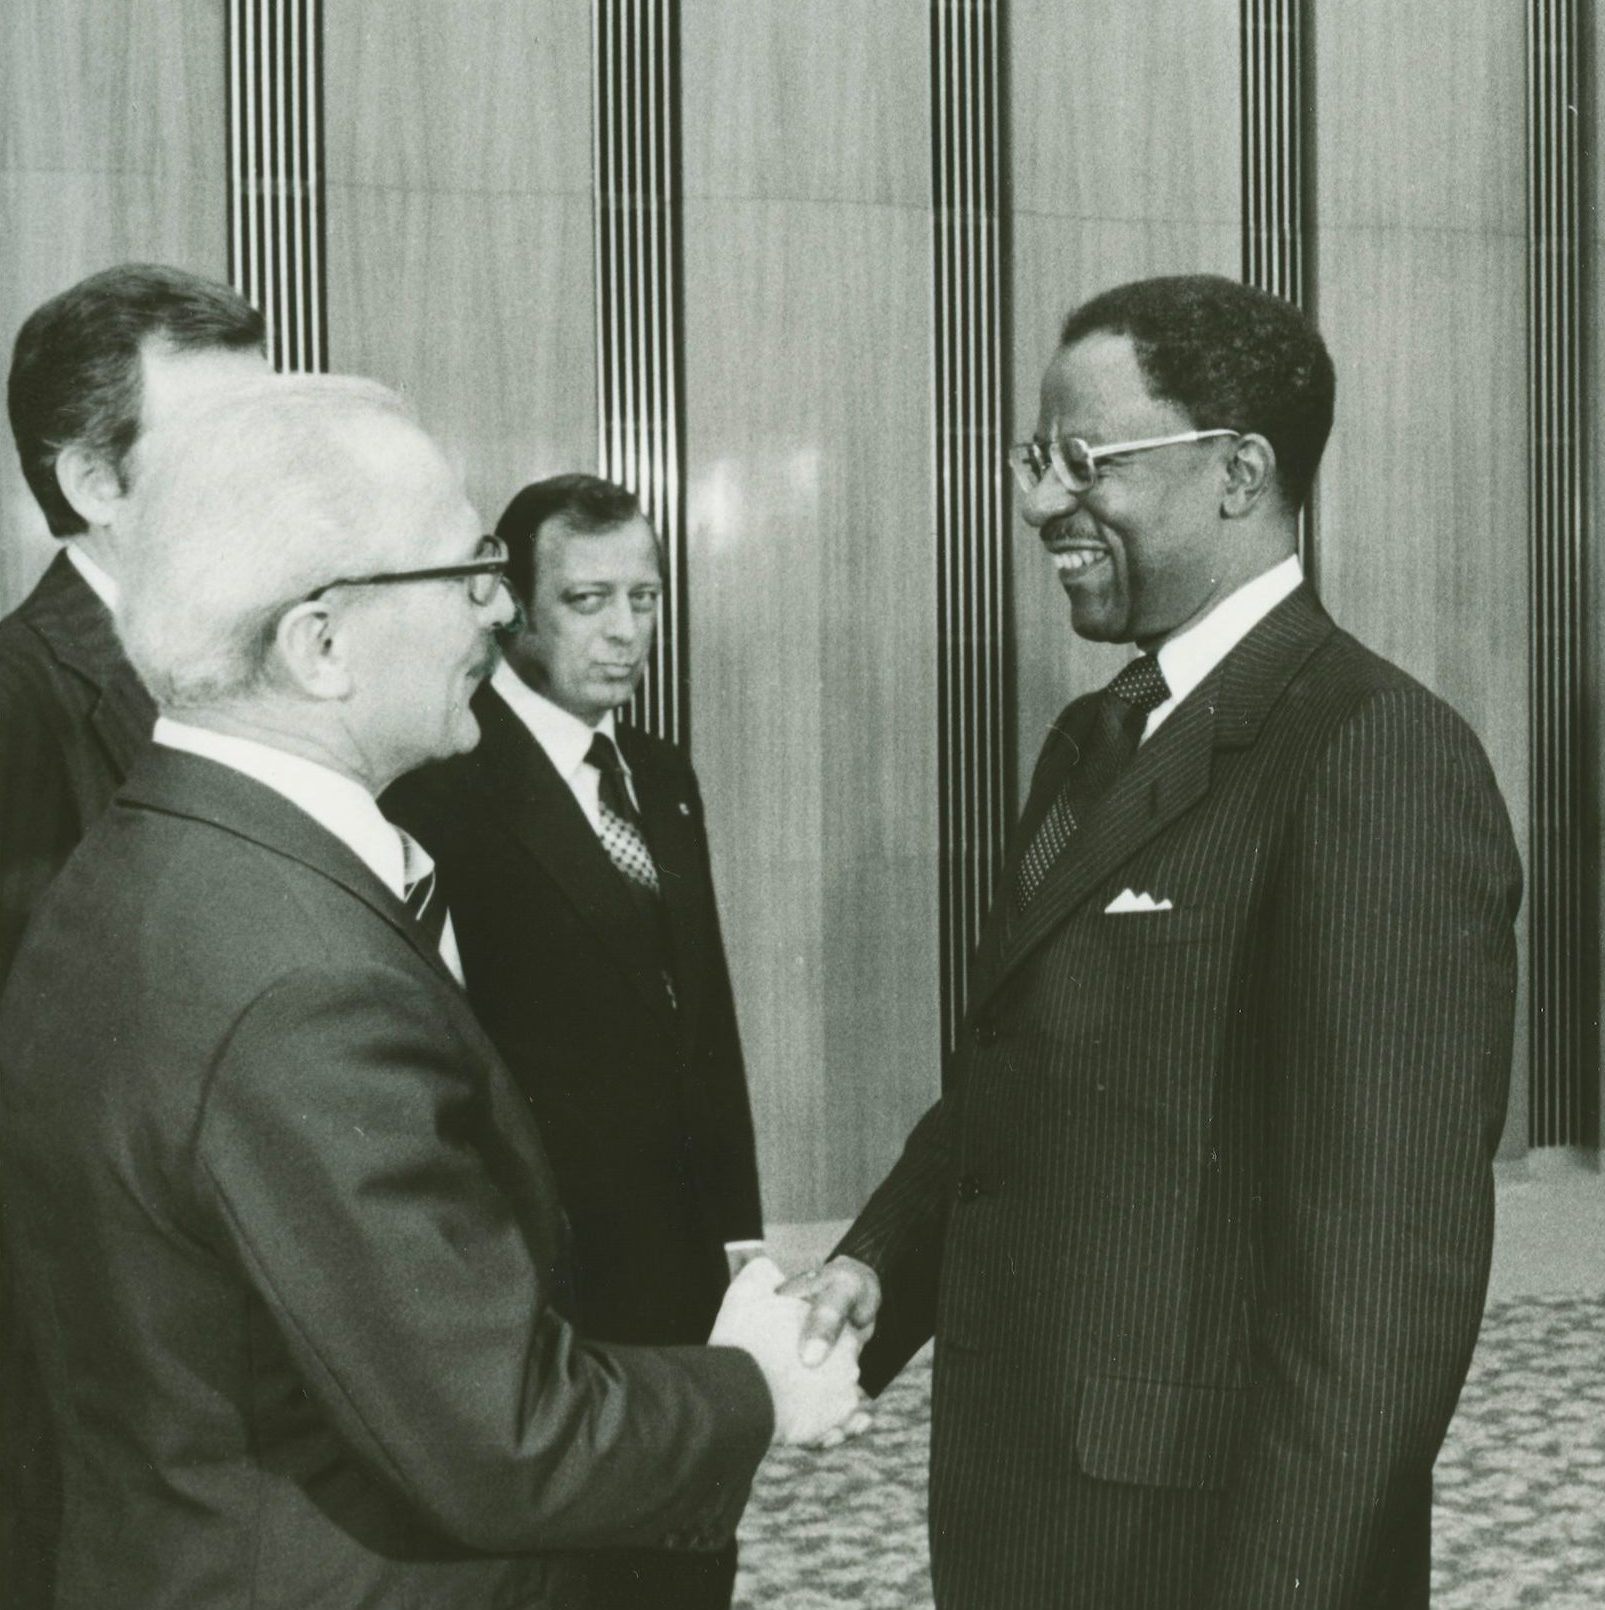 U.S. Ambassador David Bolen (right) greets East German Chairman of the Council of State Erich Honecker upon Bolen's presenting his credentials in 1977.